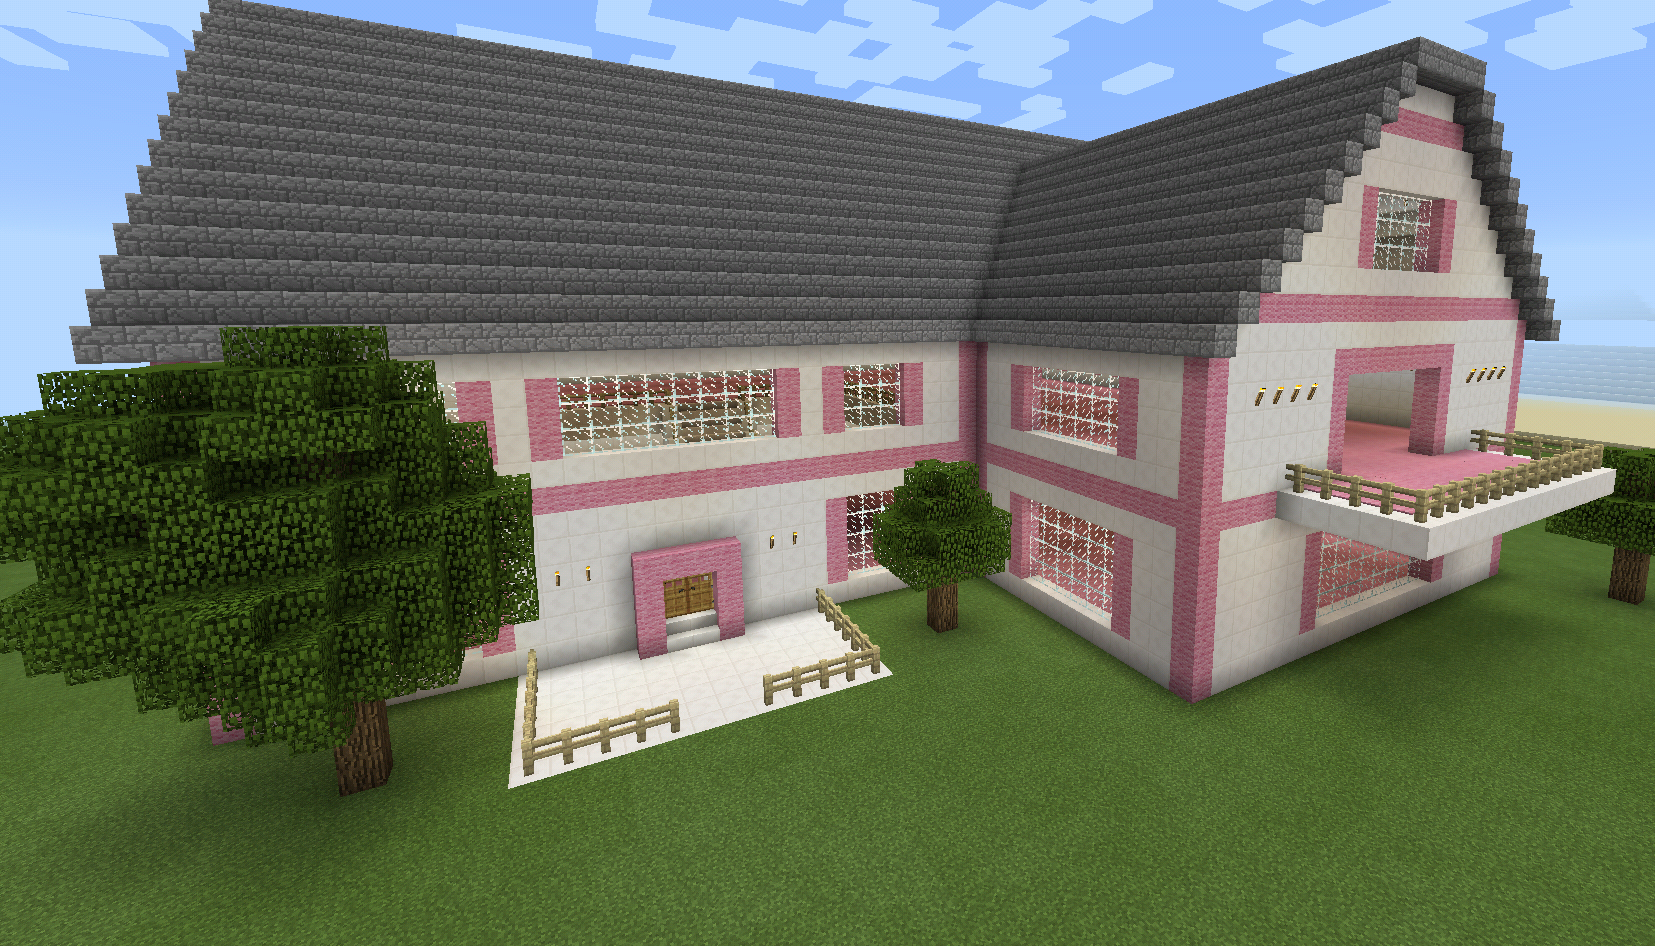 minecraft pink house with porch and balcony minecraft creations